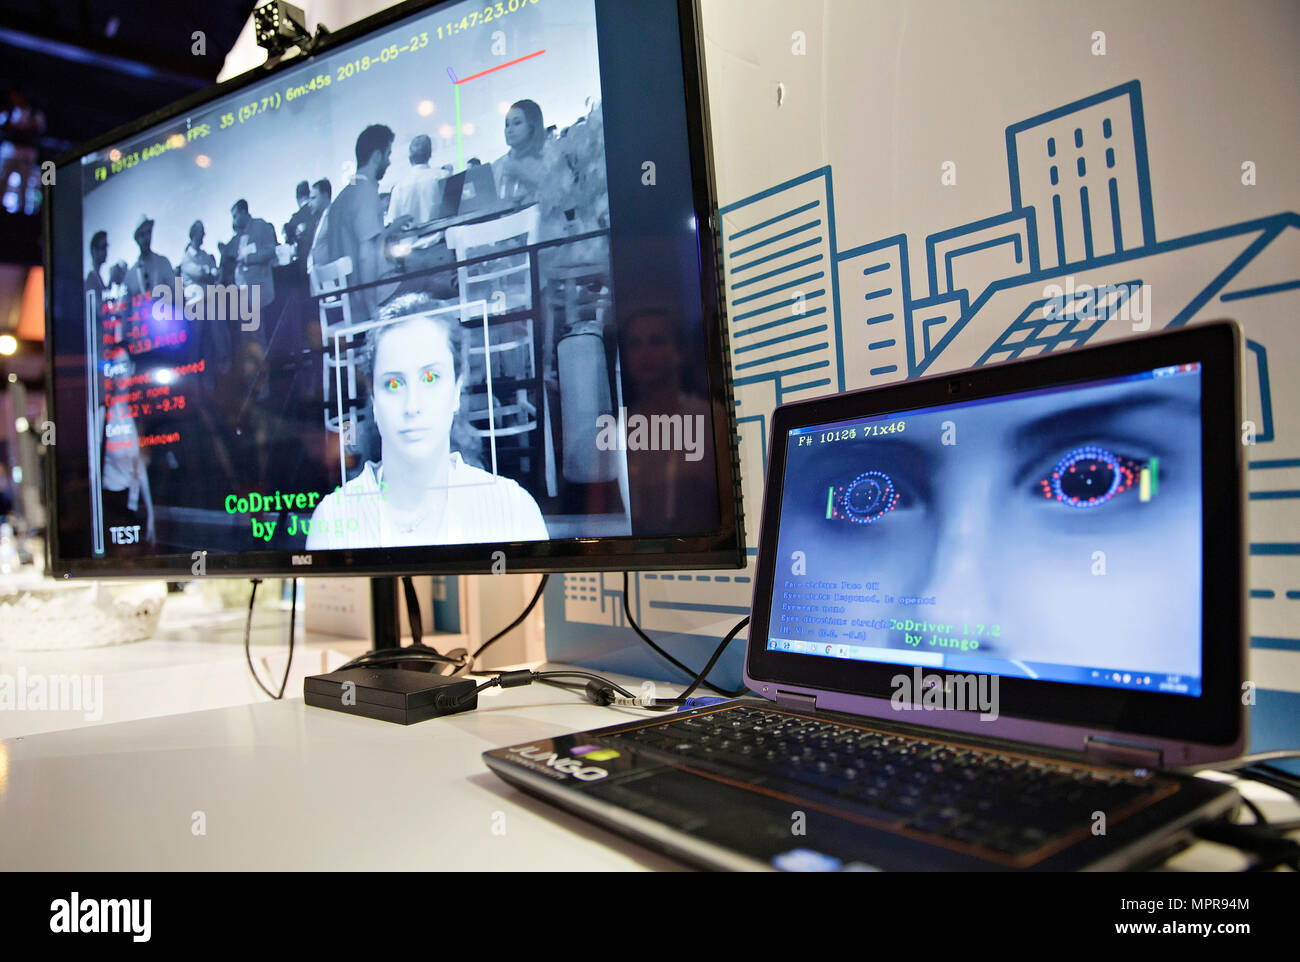 A new technology in driving safety, occupancy and driver monitoring, was presented during discussion panel Ecomotion in Tel Aviv, Israel, on May 23, 2018.  (CTK Photo/Rene Fluger) - Stock Image